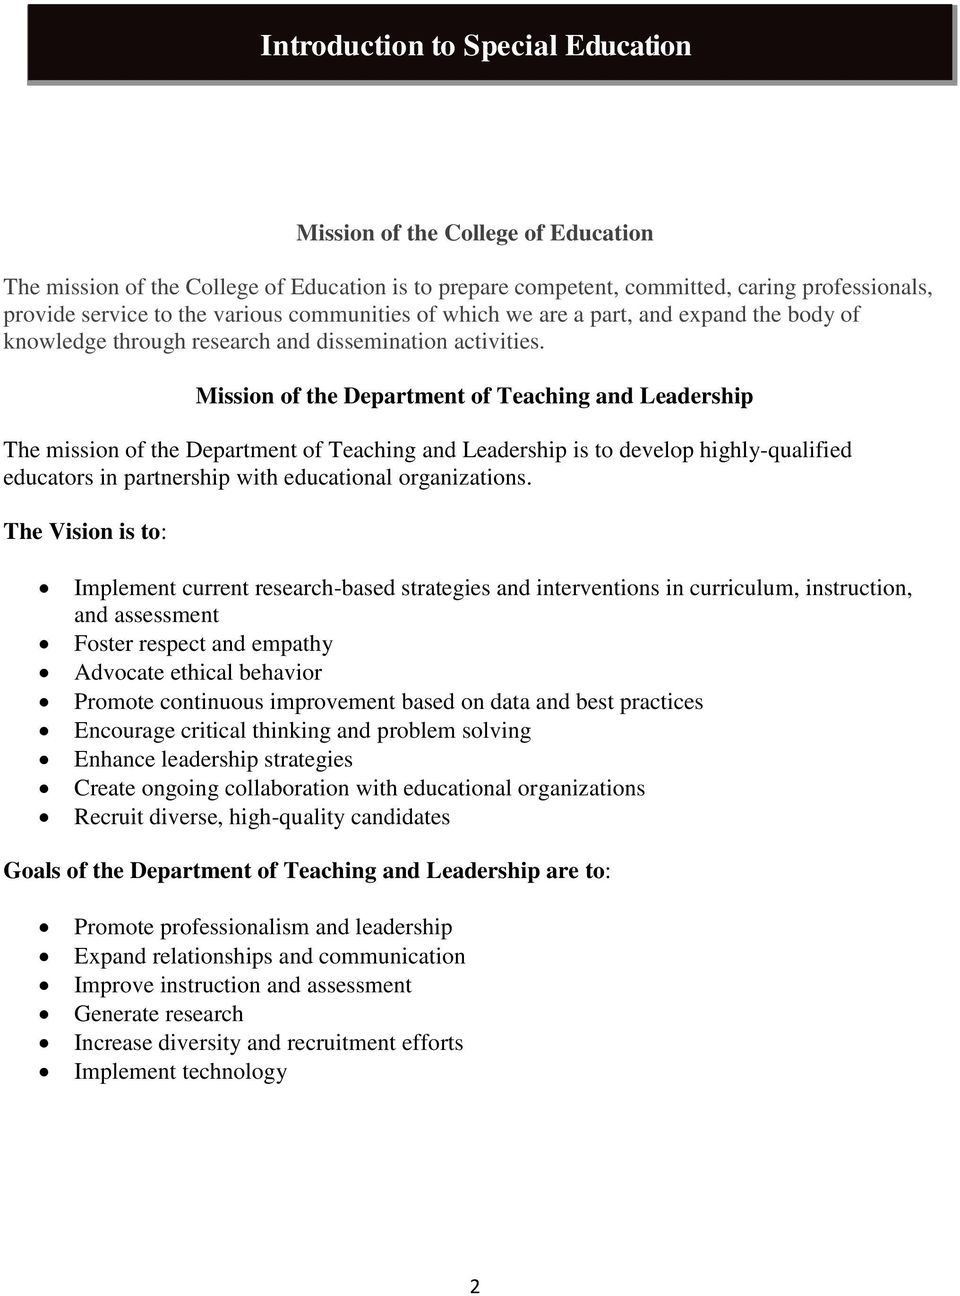 Mission of the Department of Teaching and Leadership The mission of the Department of Teaching and Leadership is to develop highly-qualified educators in partnership with educational organizations.